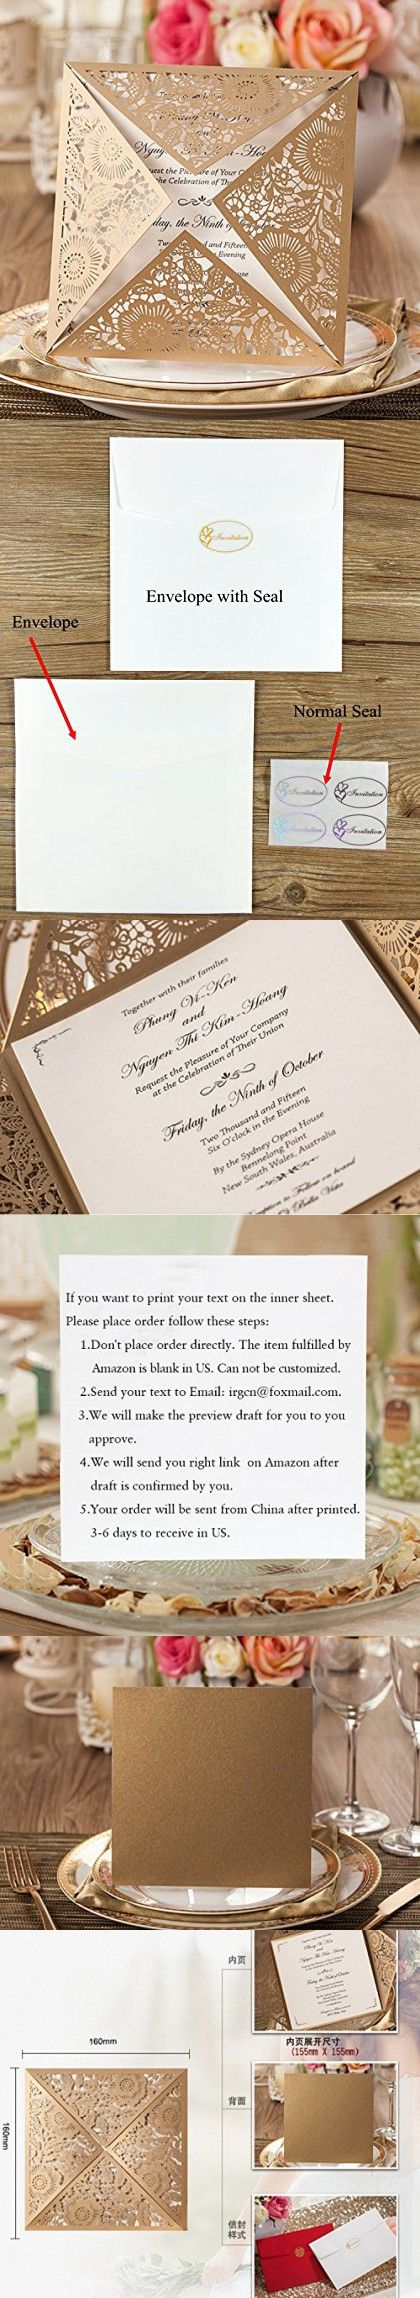 how far in advance should you send wedding invitations%0A career objective on a resume